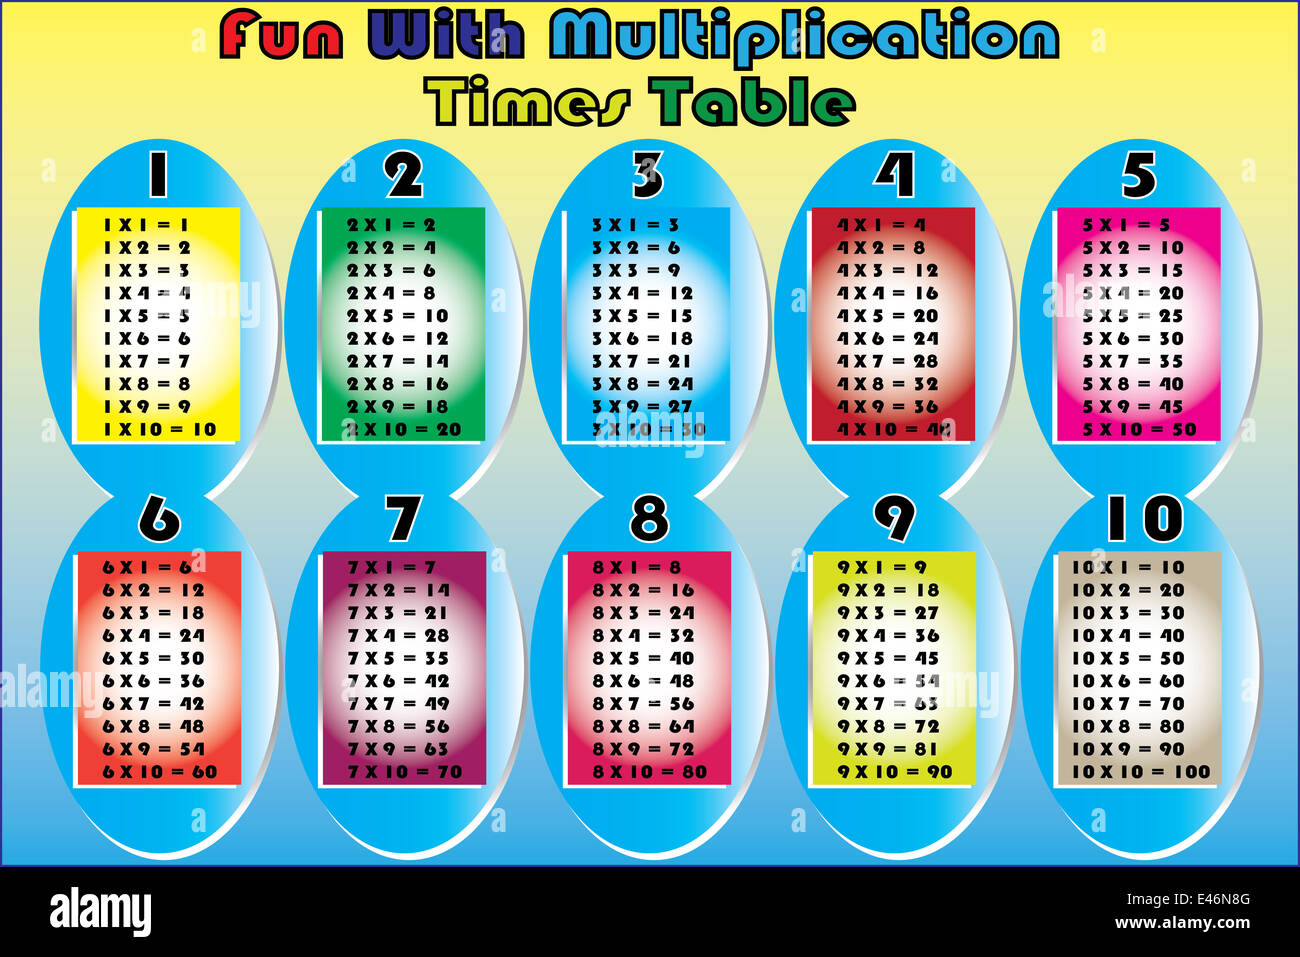 Multiplication Table Five Stock Photos Amp Multiplication Table Five Stock Images